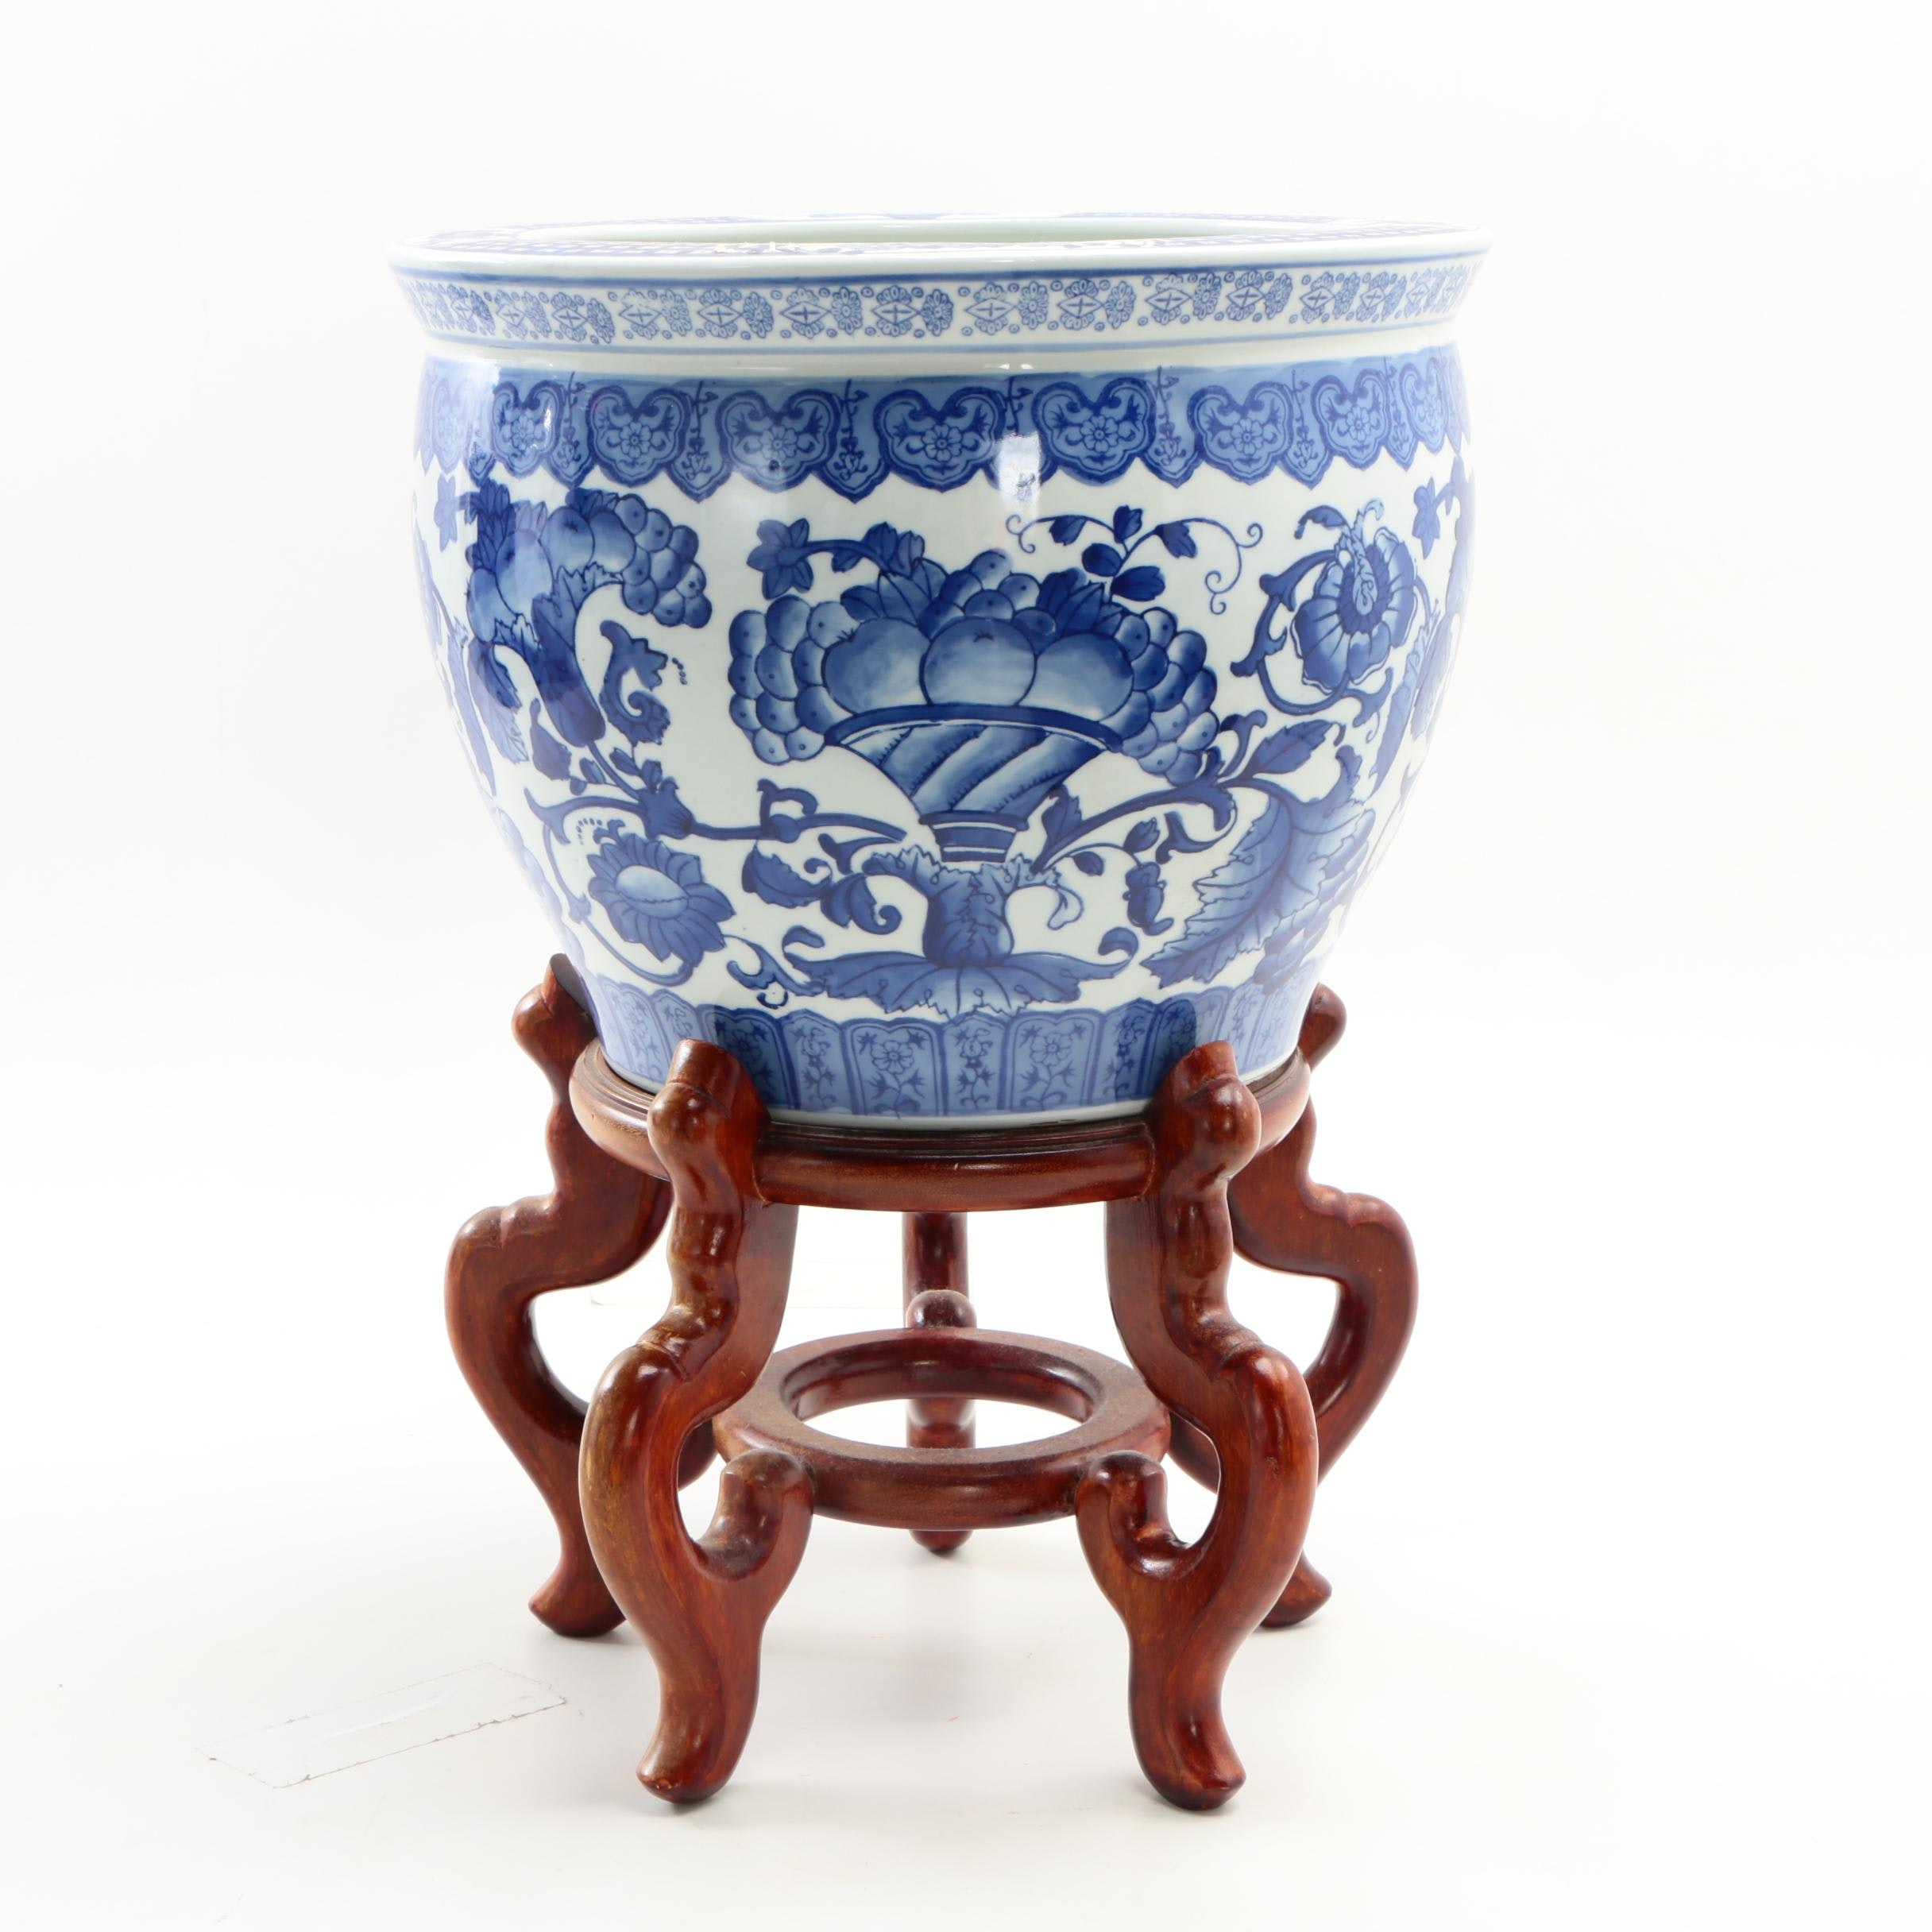 Chinese Blue and White Ceramic Fishbowl Jardiniere with Carved Wooden Stand